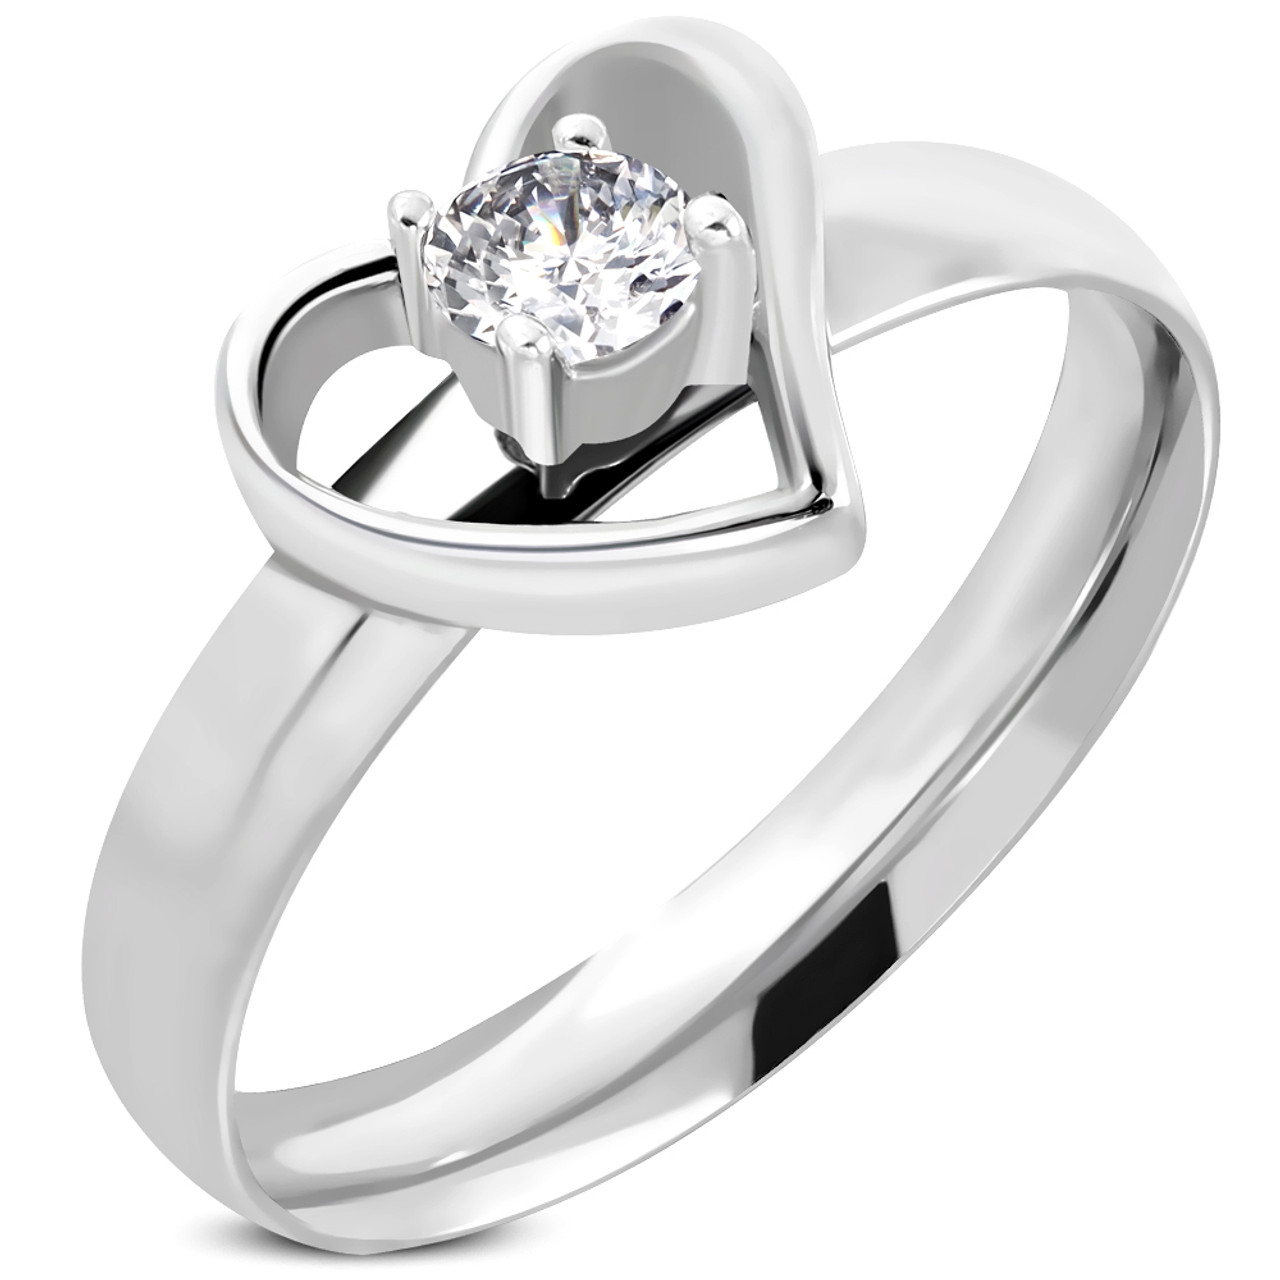 Stainless Steel Band Wedding Ring 3 Solitaire CZ Comfort Fit 5mm High Polish